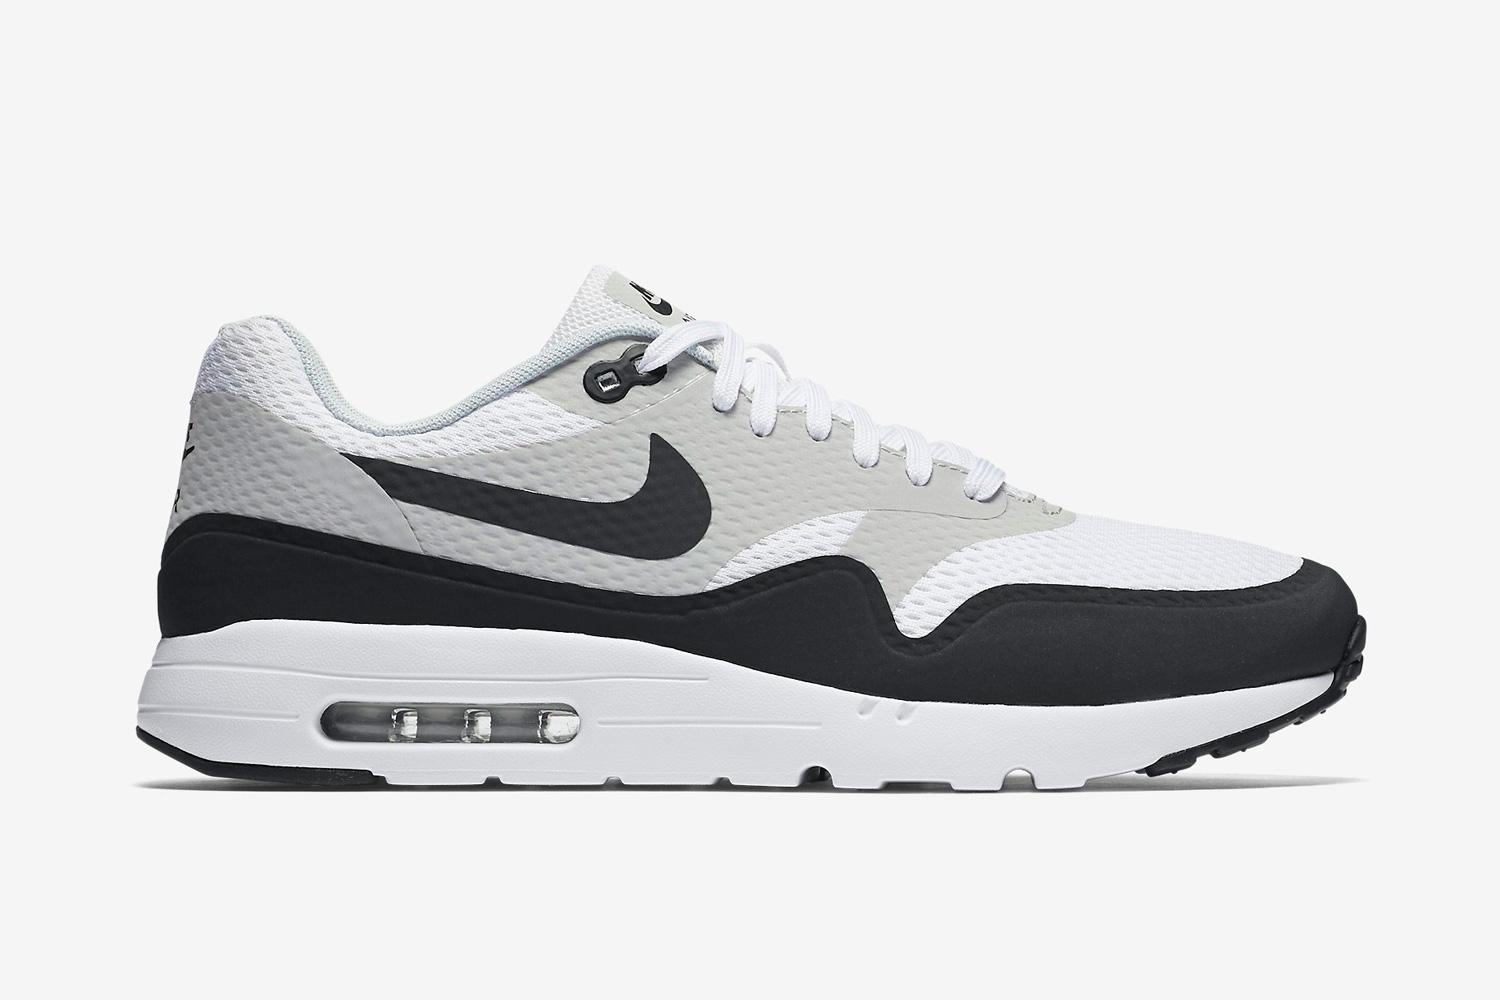 Details about nike air max 1 ultra moire womens trainers 704995 501 sneakers shoes